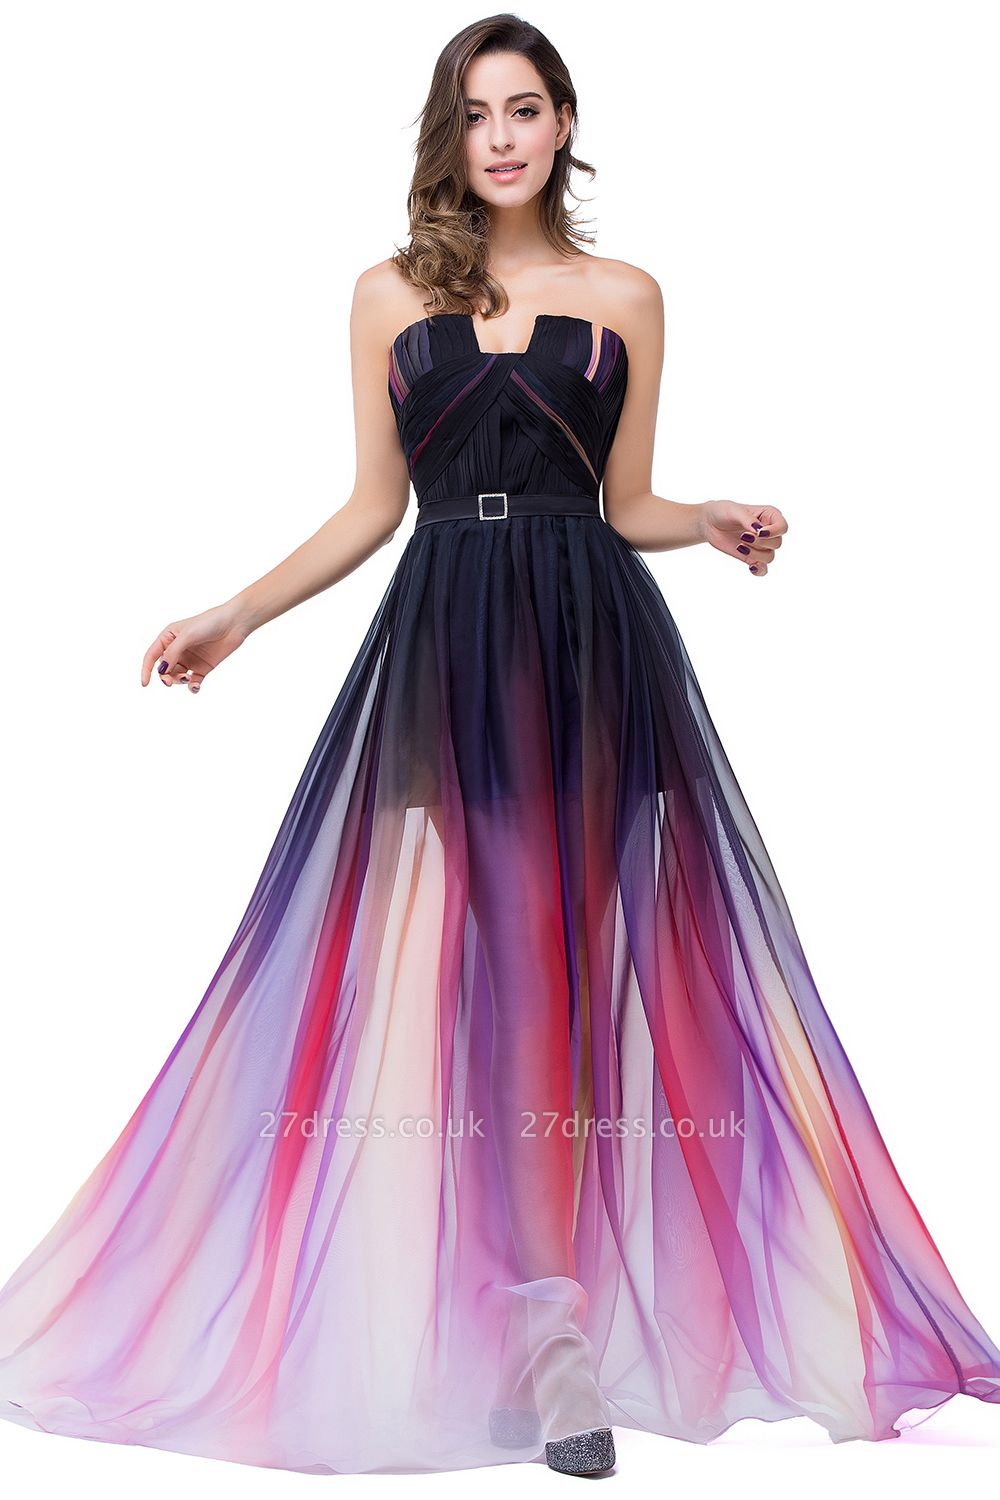 ELISABETH | A-line Floor-length Strapless Tulle Prom Dresses with Sash